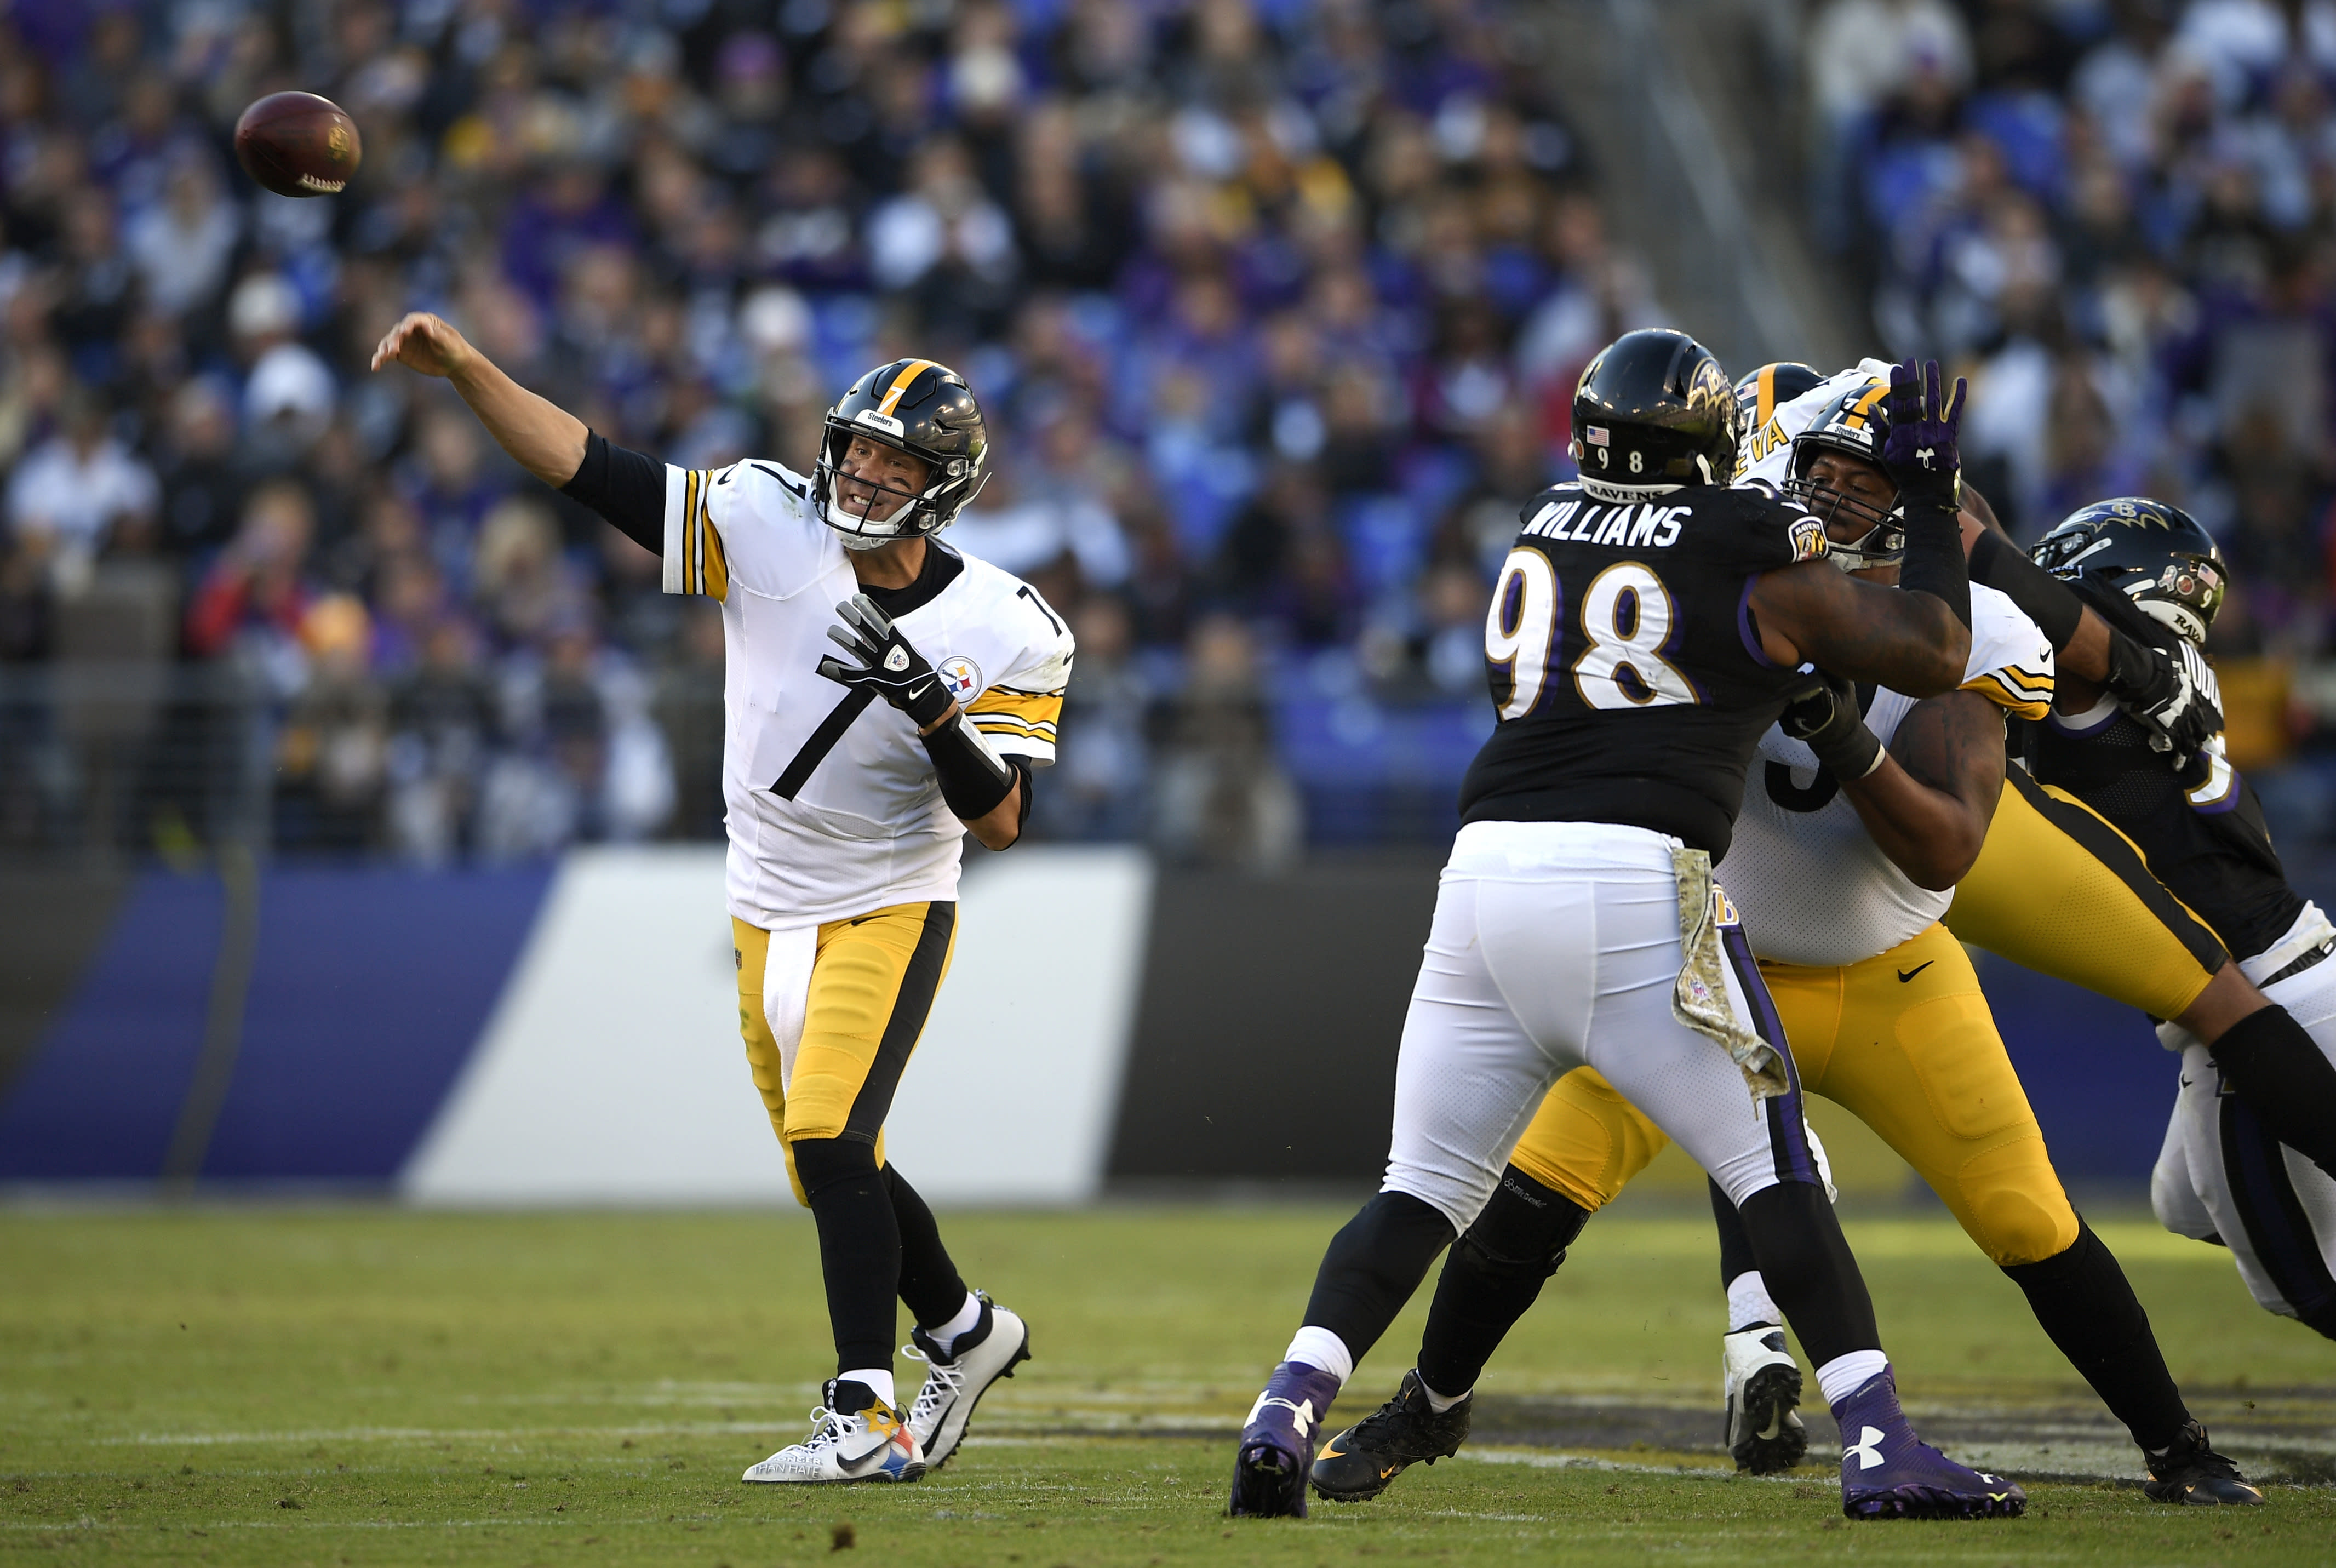 Roethlisberger overcomes injury scare to lead Steelers to win 45bb54b87